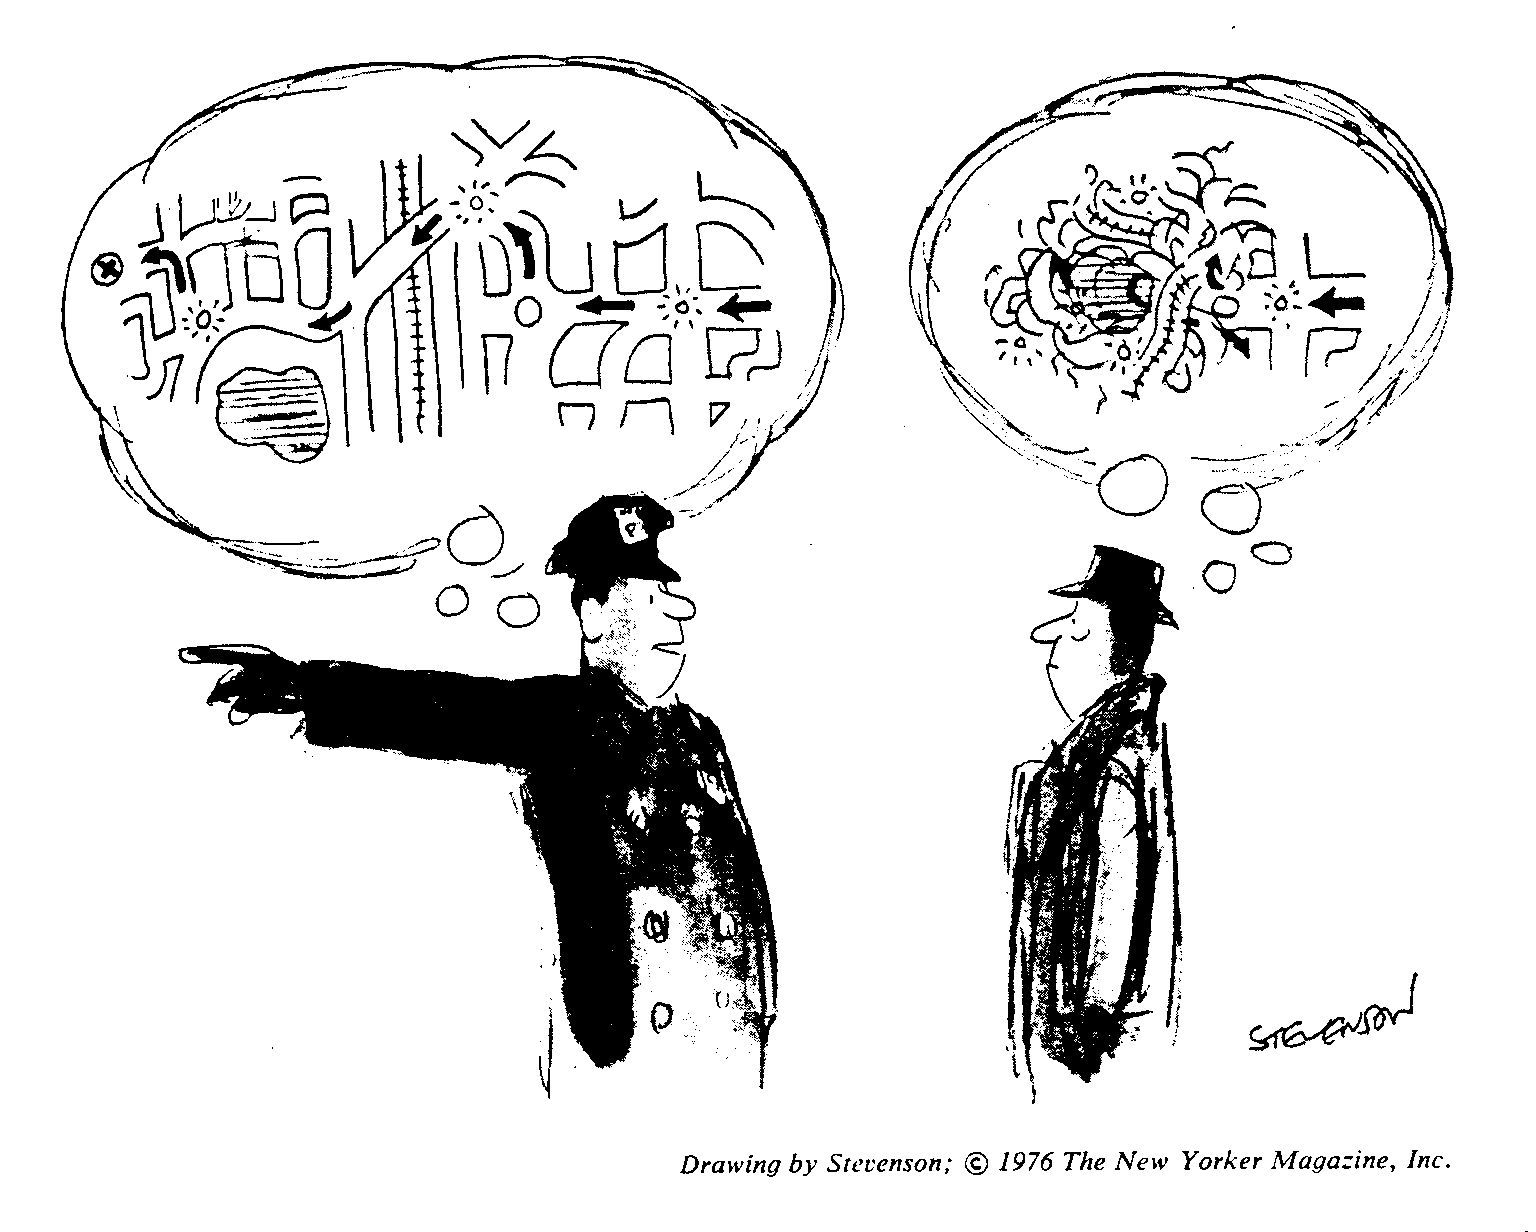 Cartoon Of Police Officer Giving Directions With Two